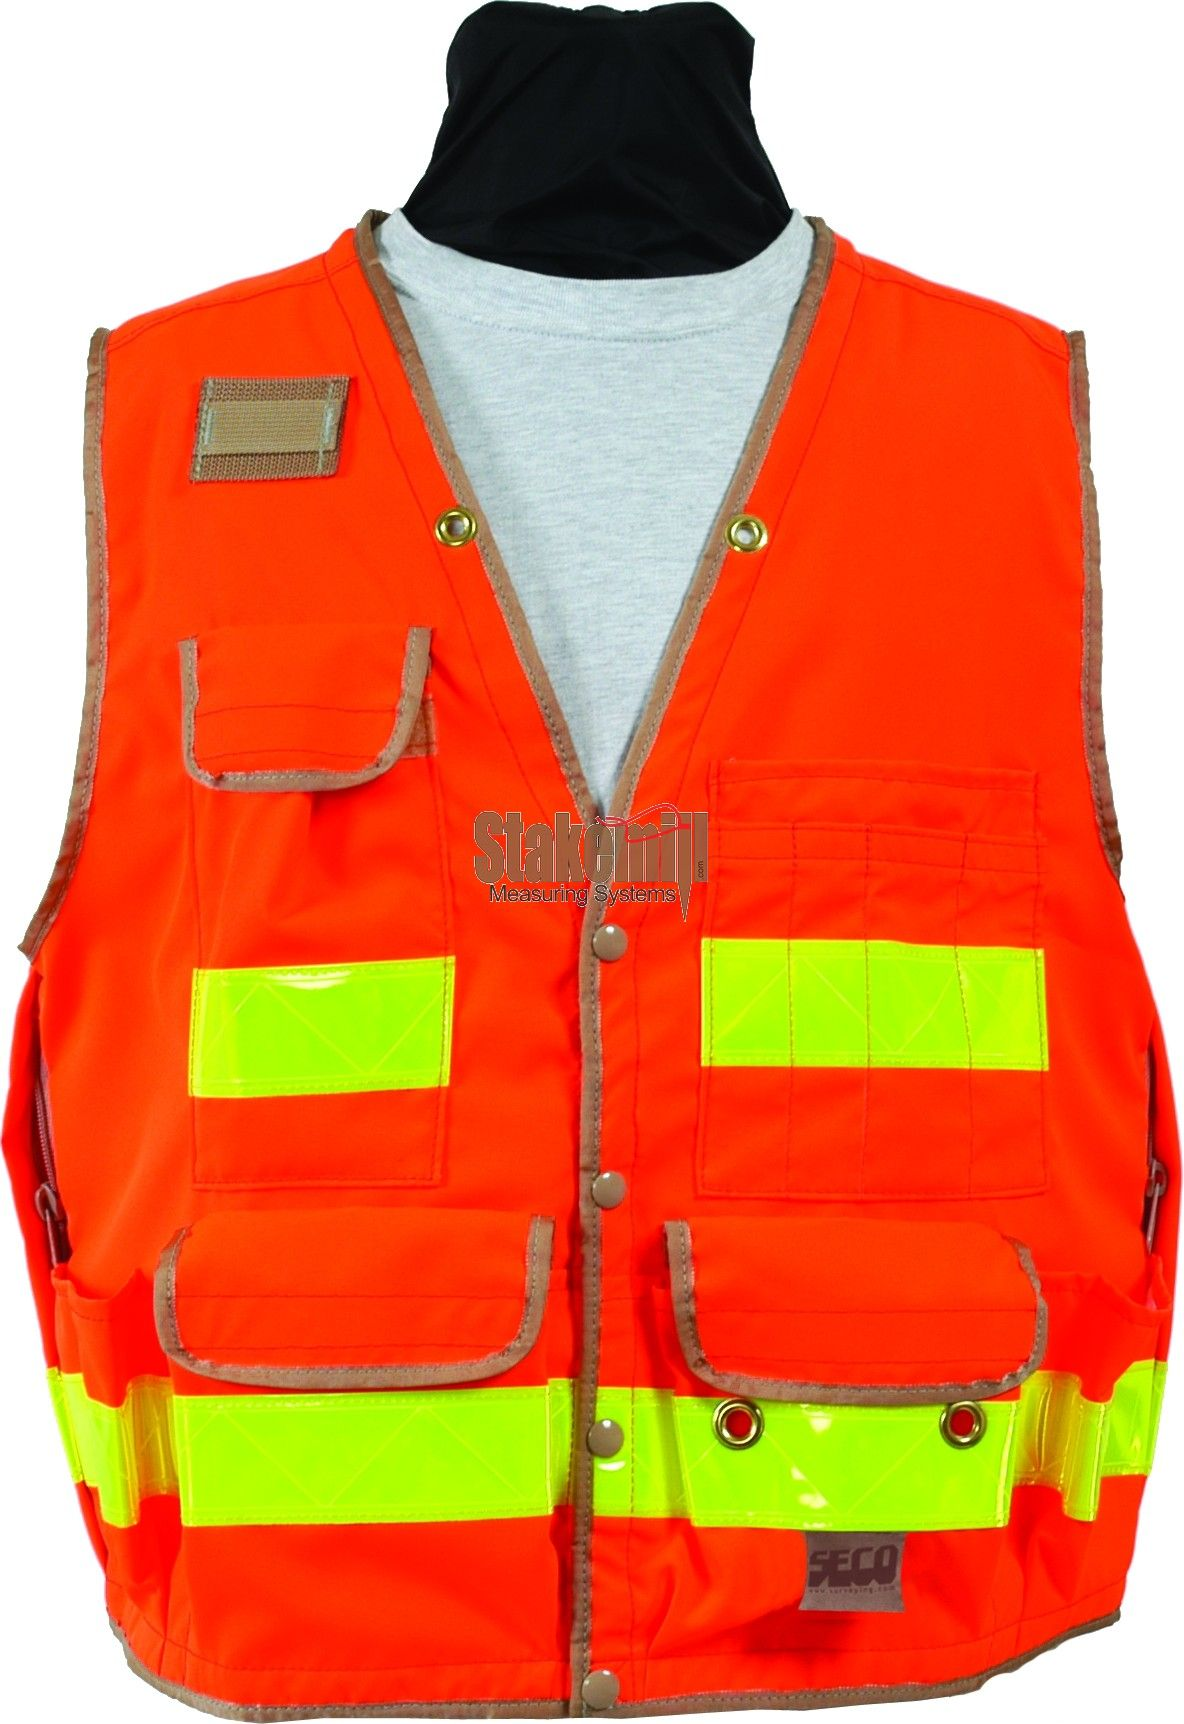 SECO 8068 Series Surveyors Vest Class II Fluorescent